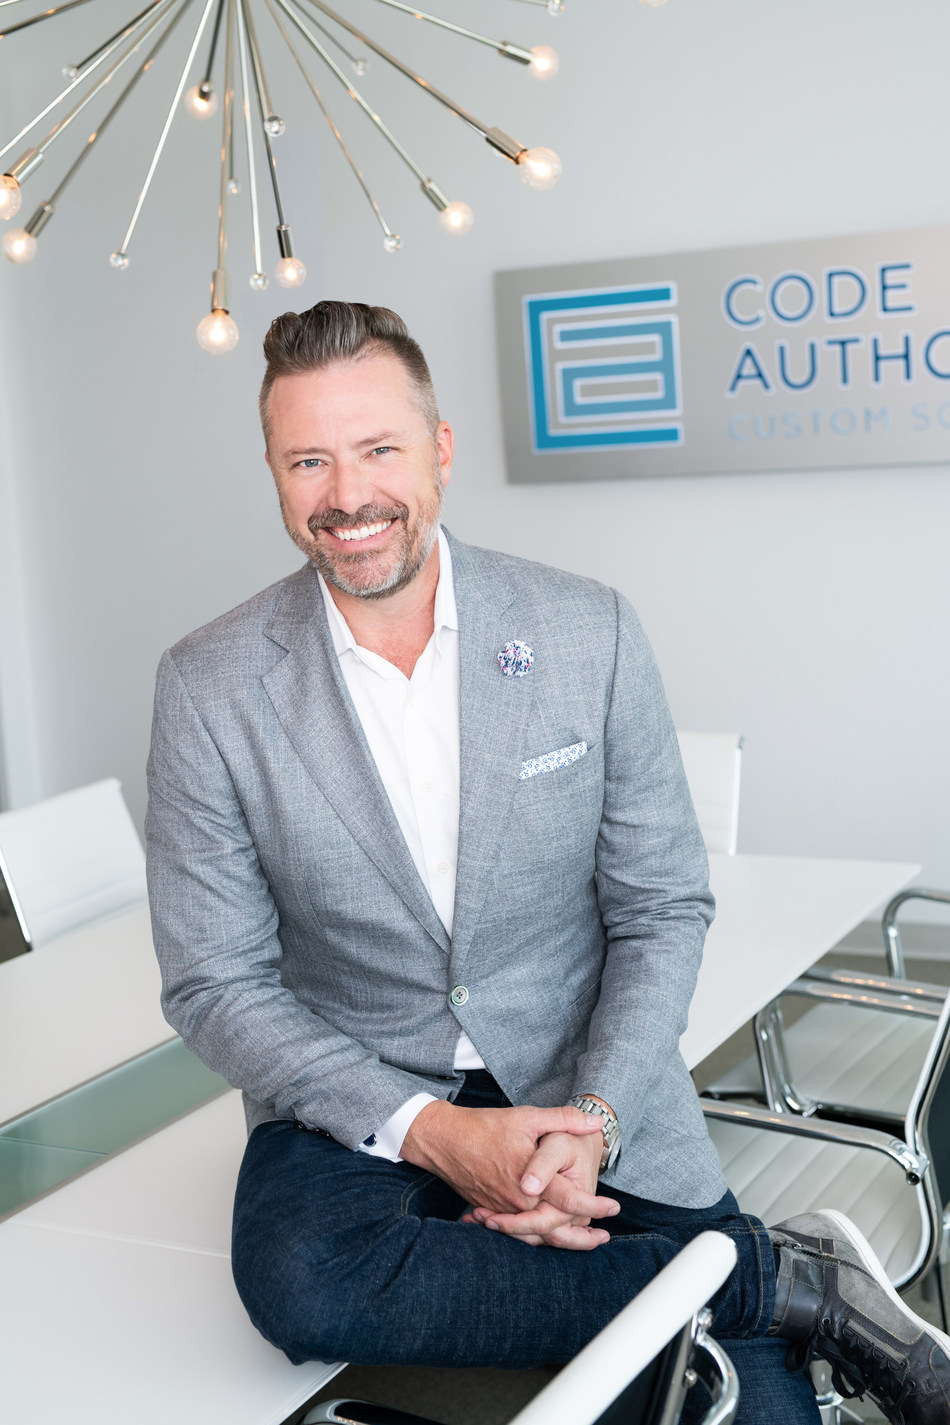 Jason W. Taylor, President of Code Authority